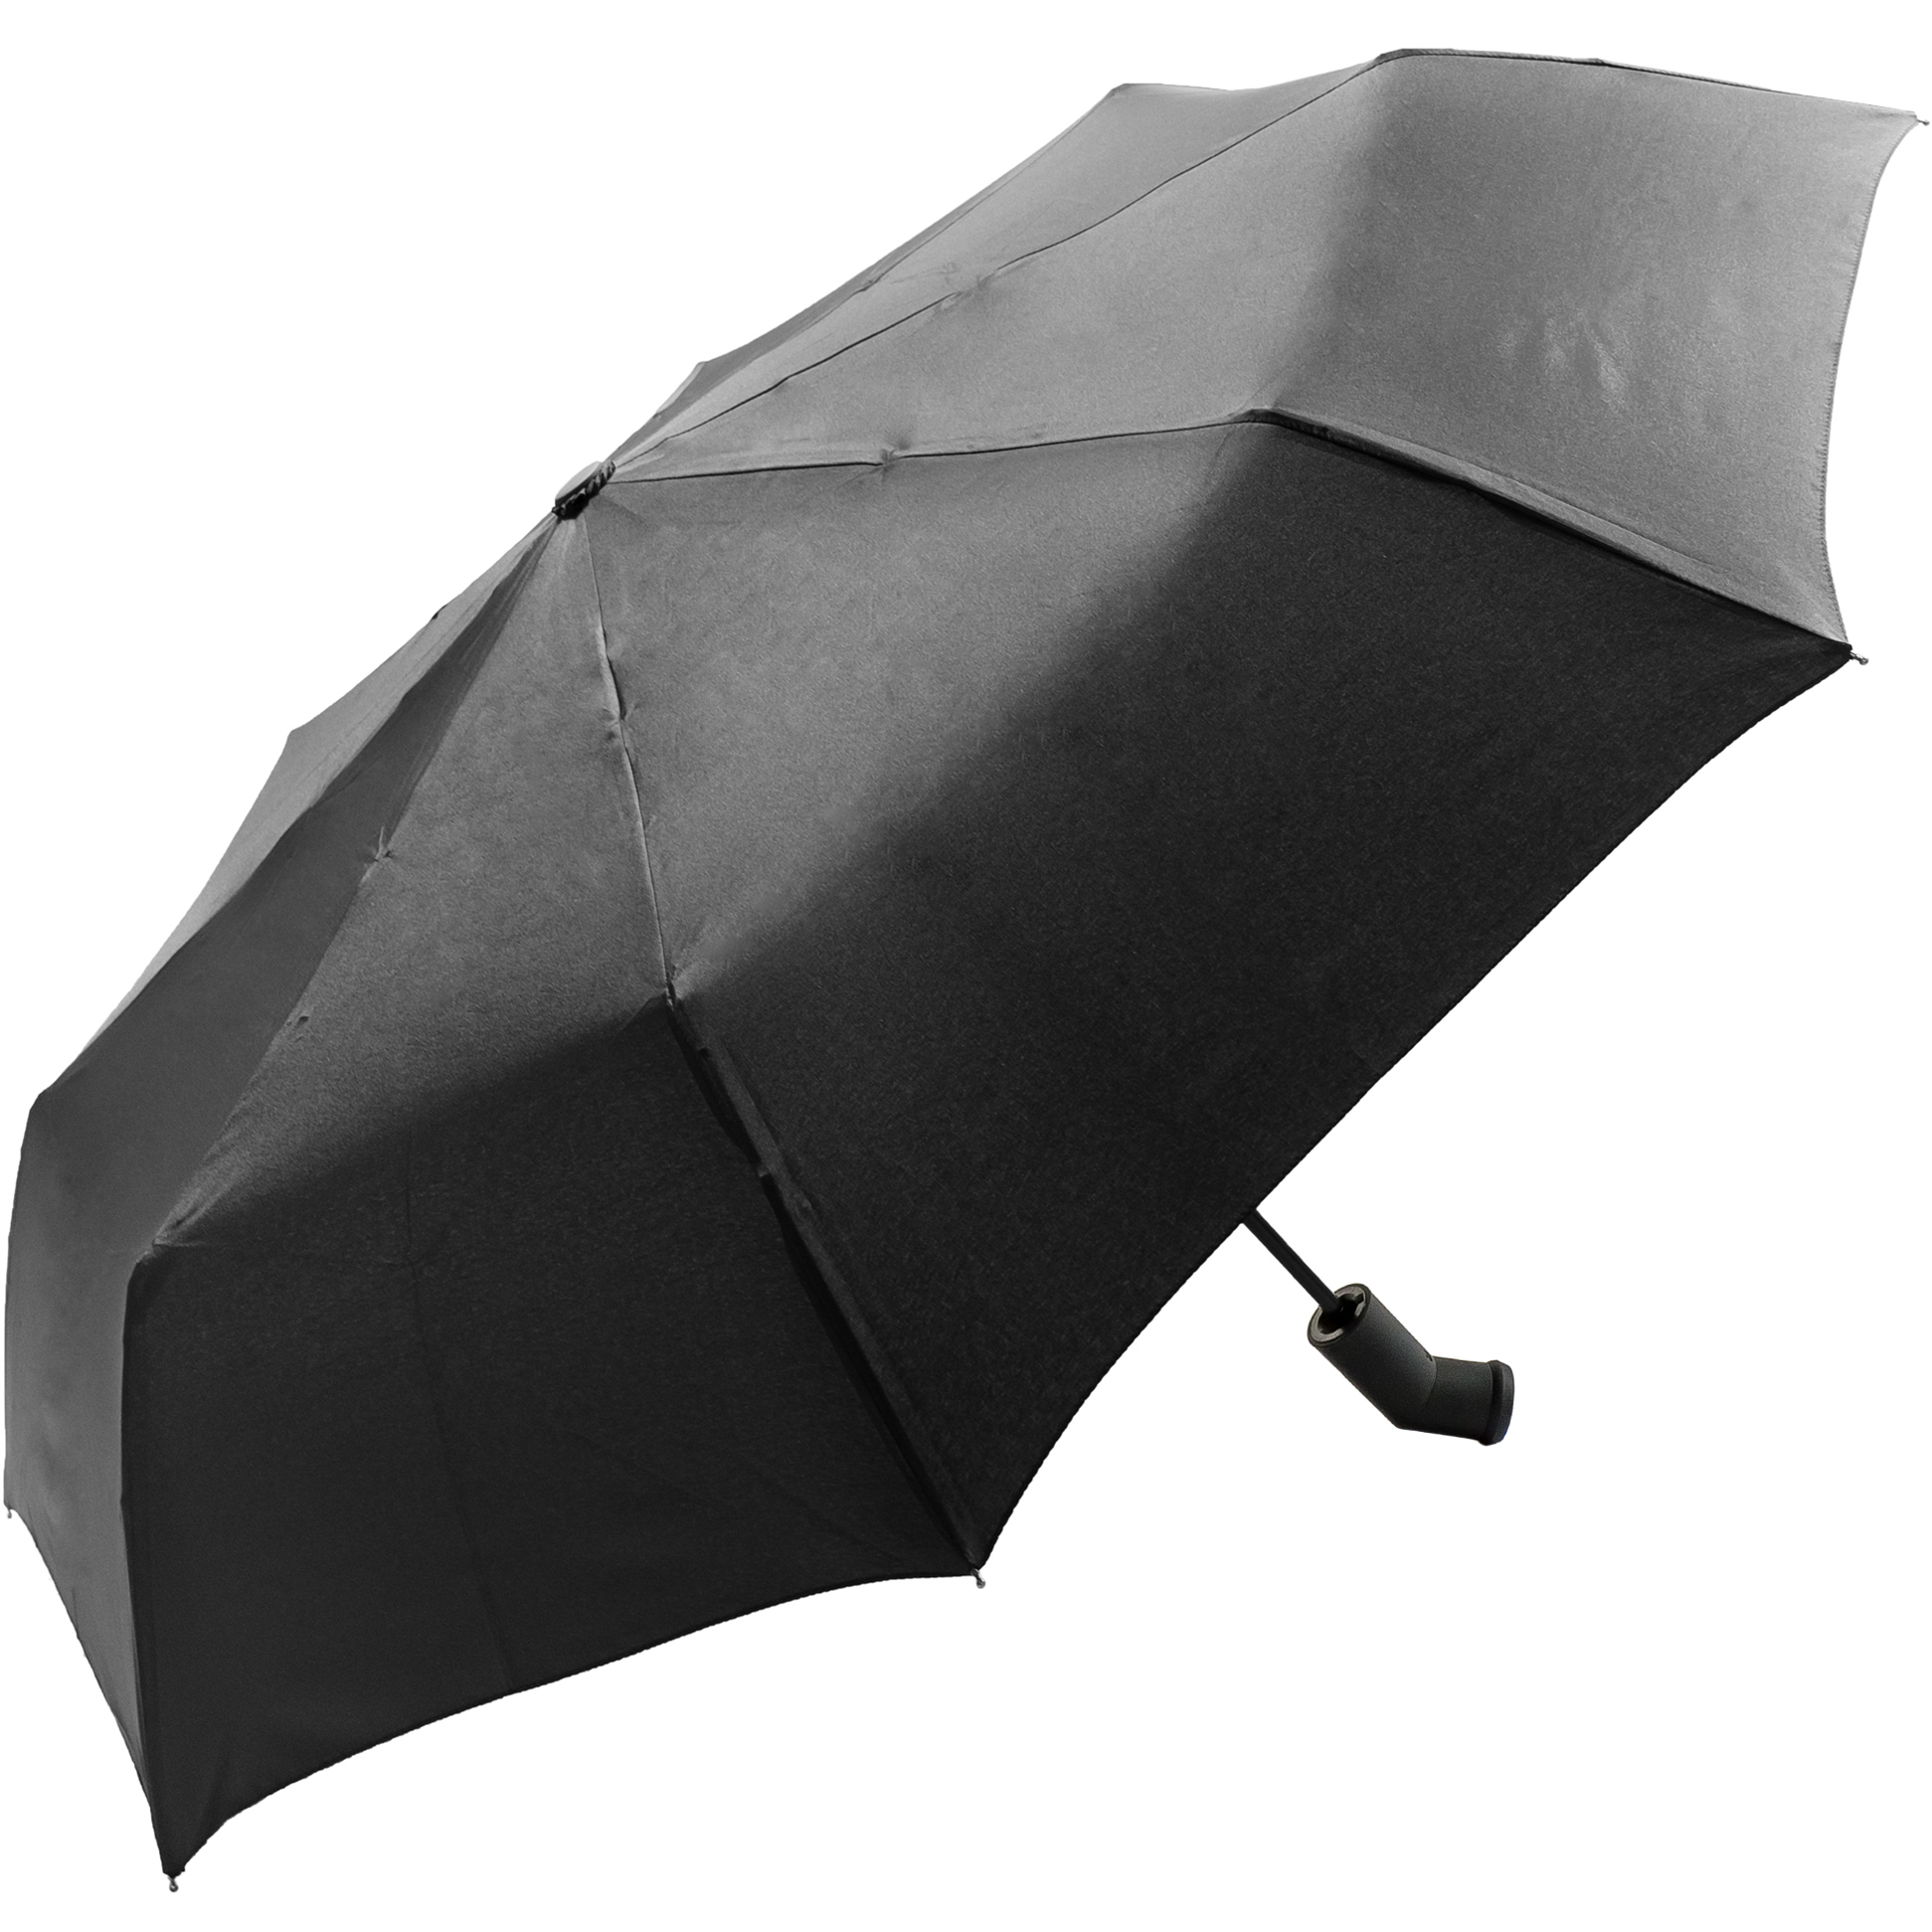 Torch Umbrella (31901T)